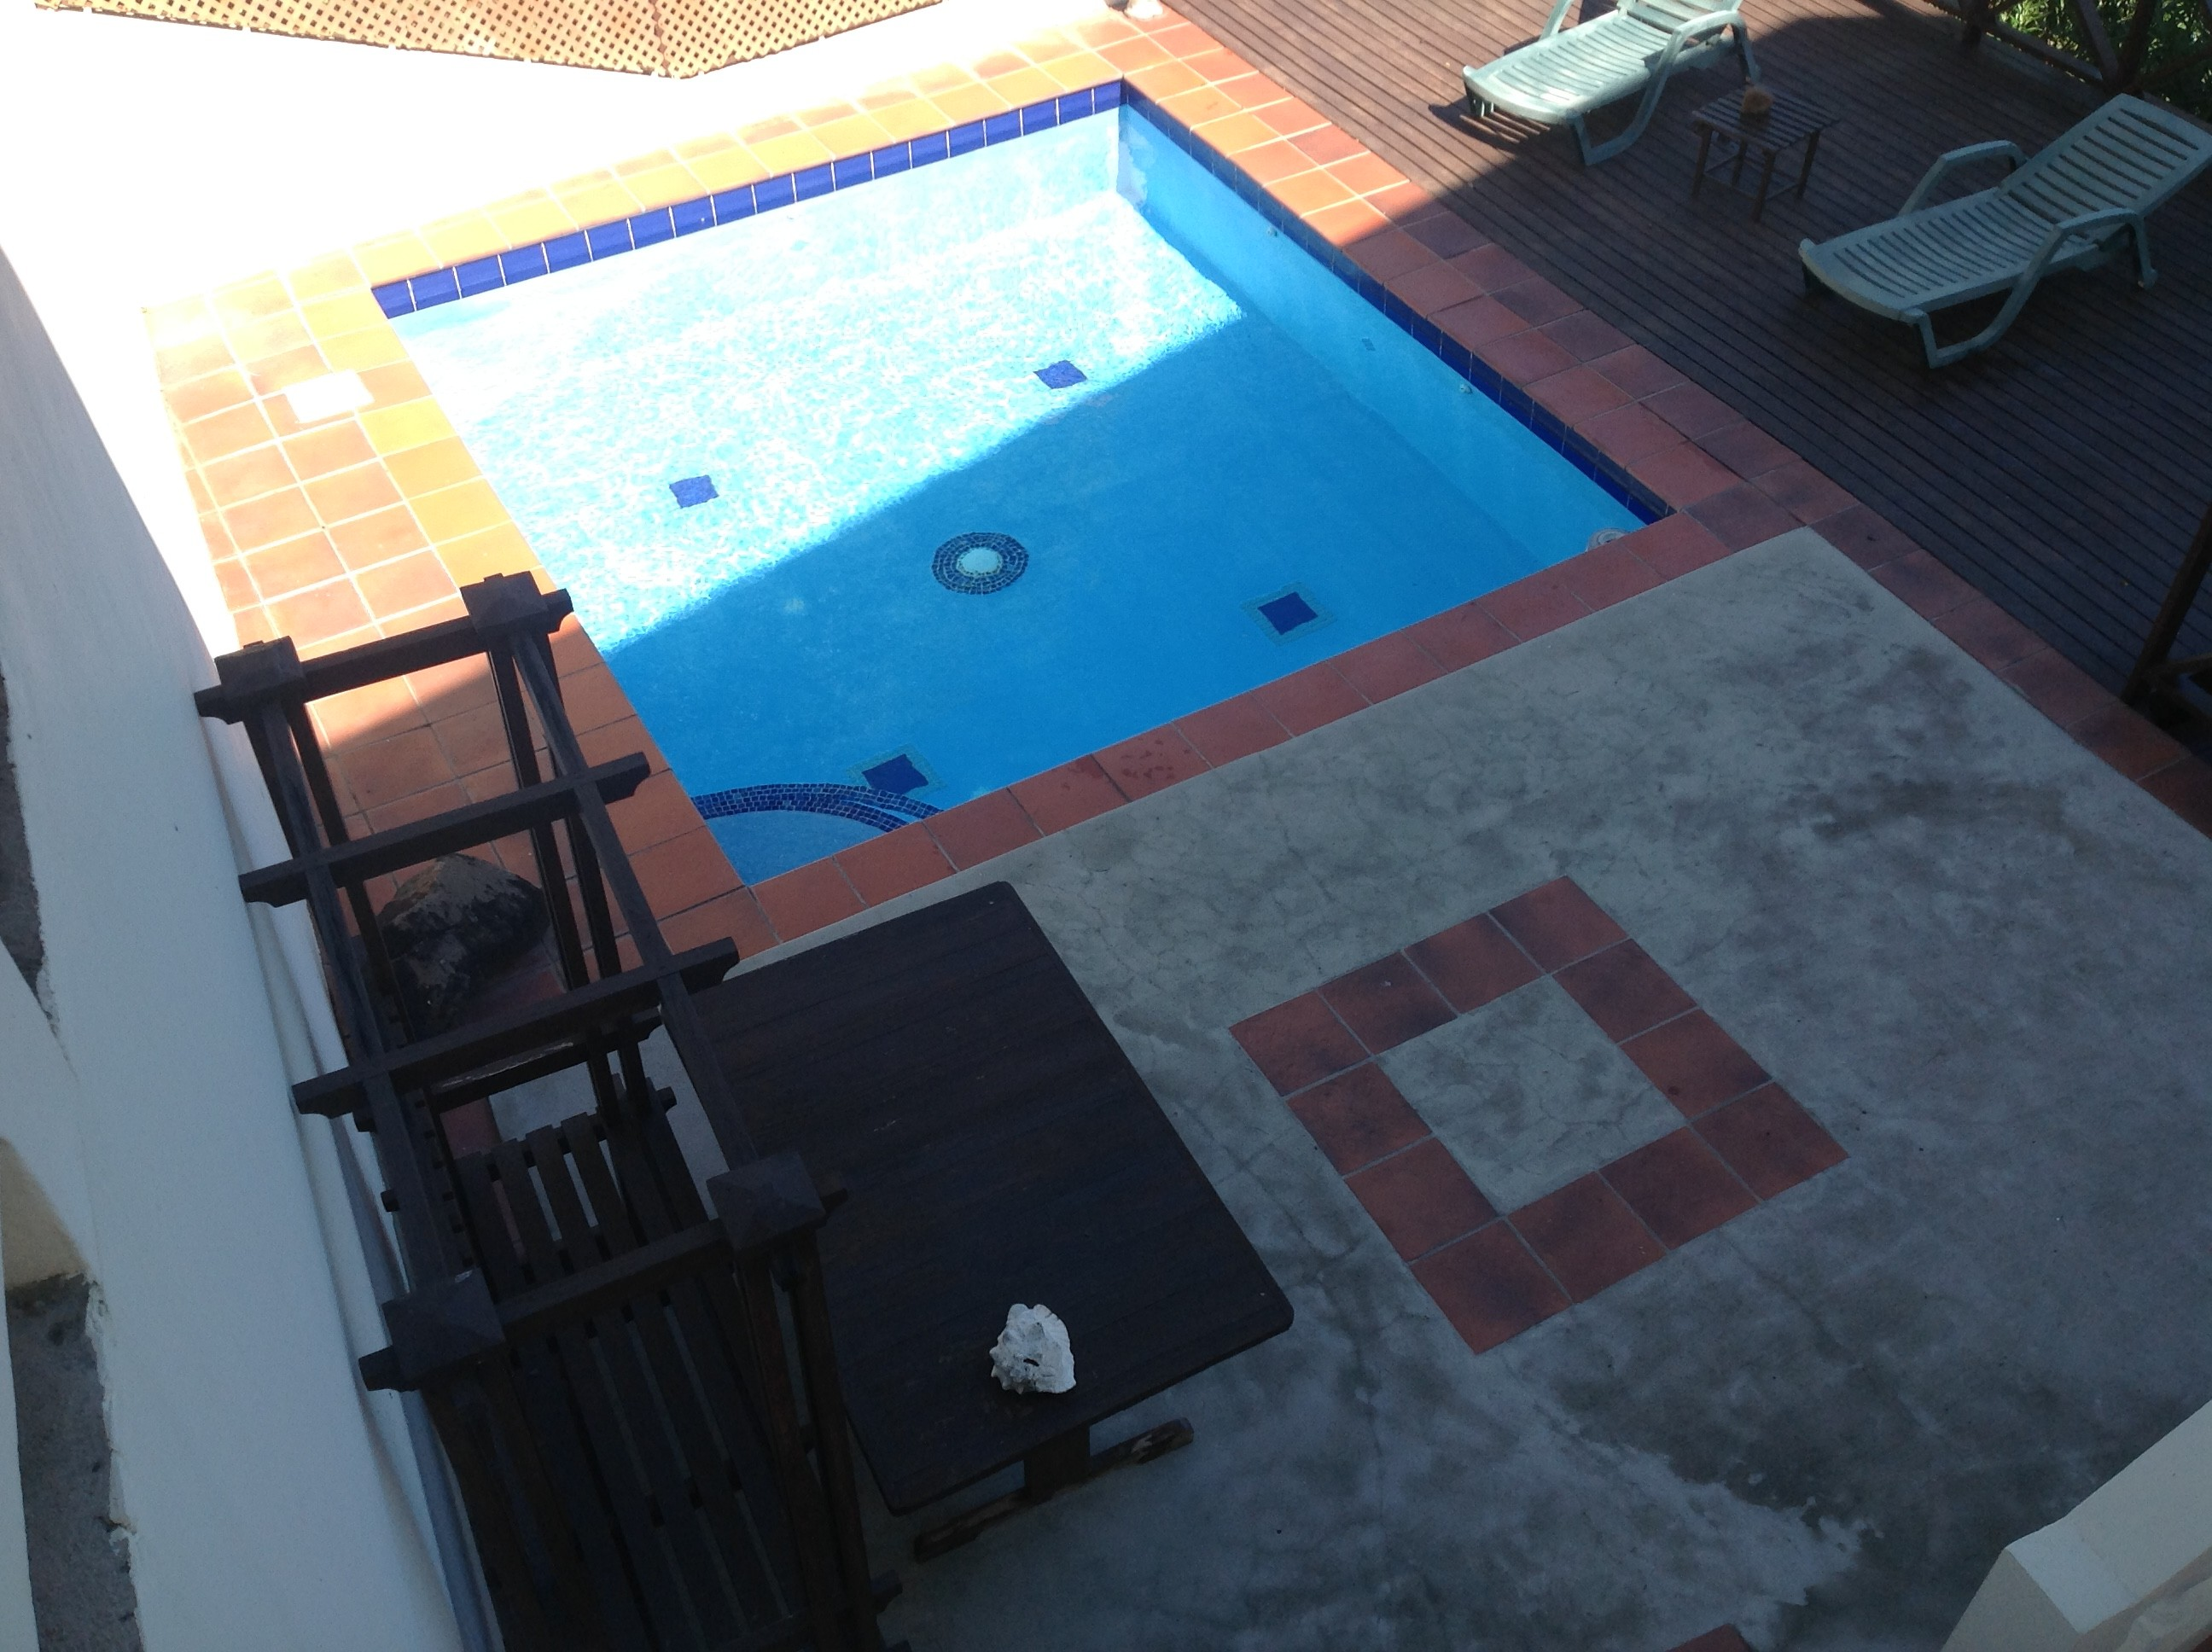 property for sale at cap estate with pool